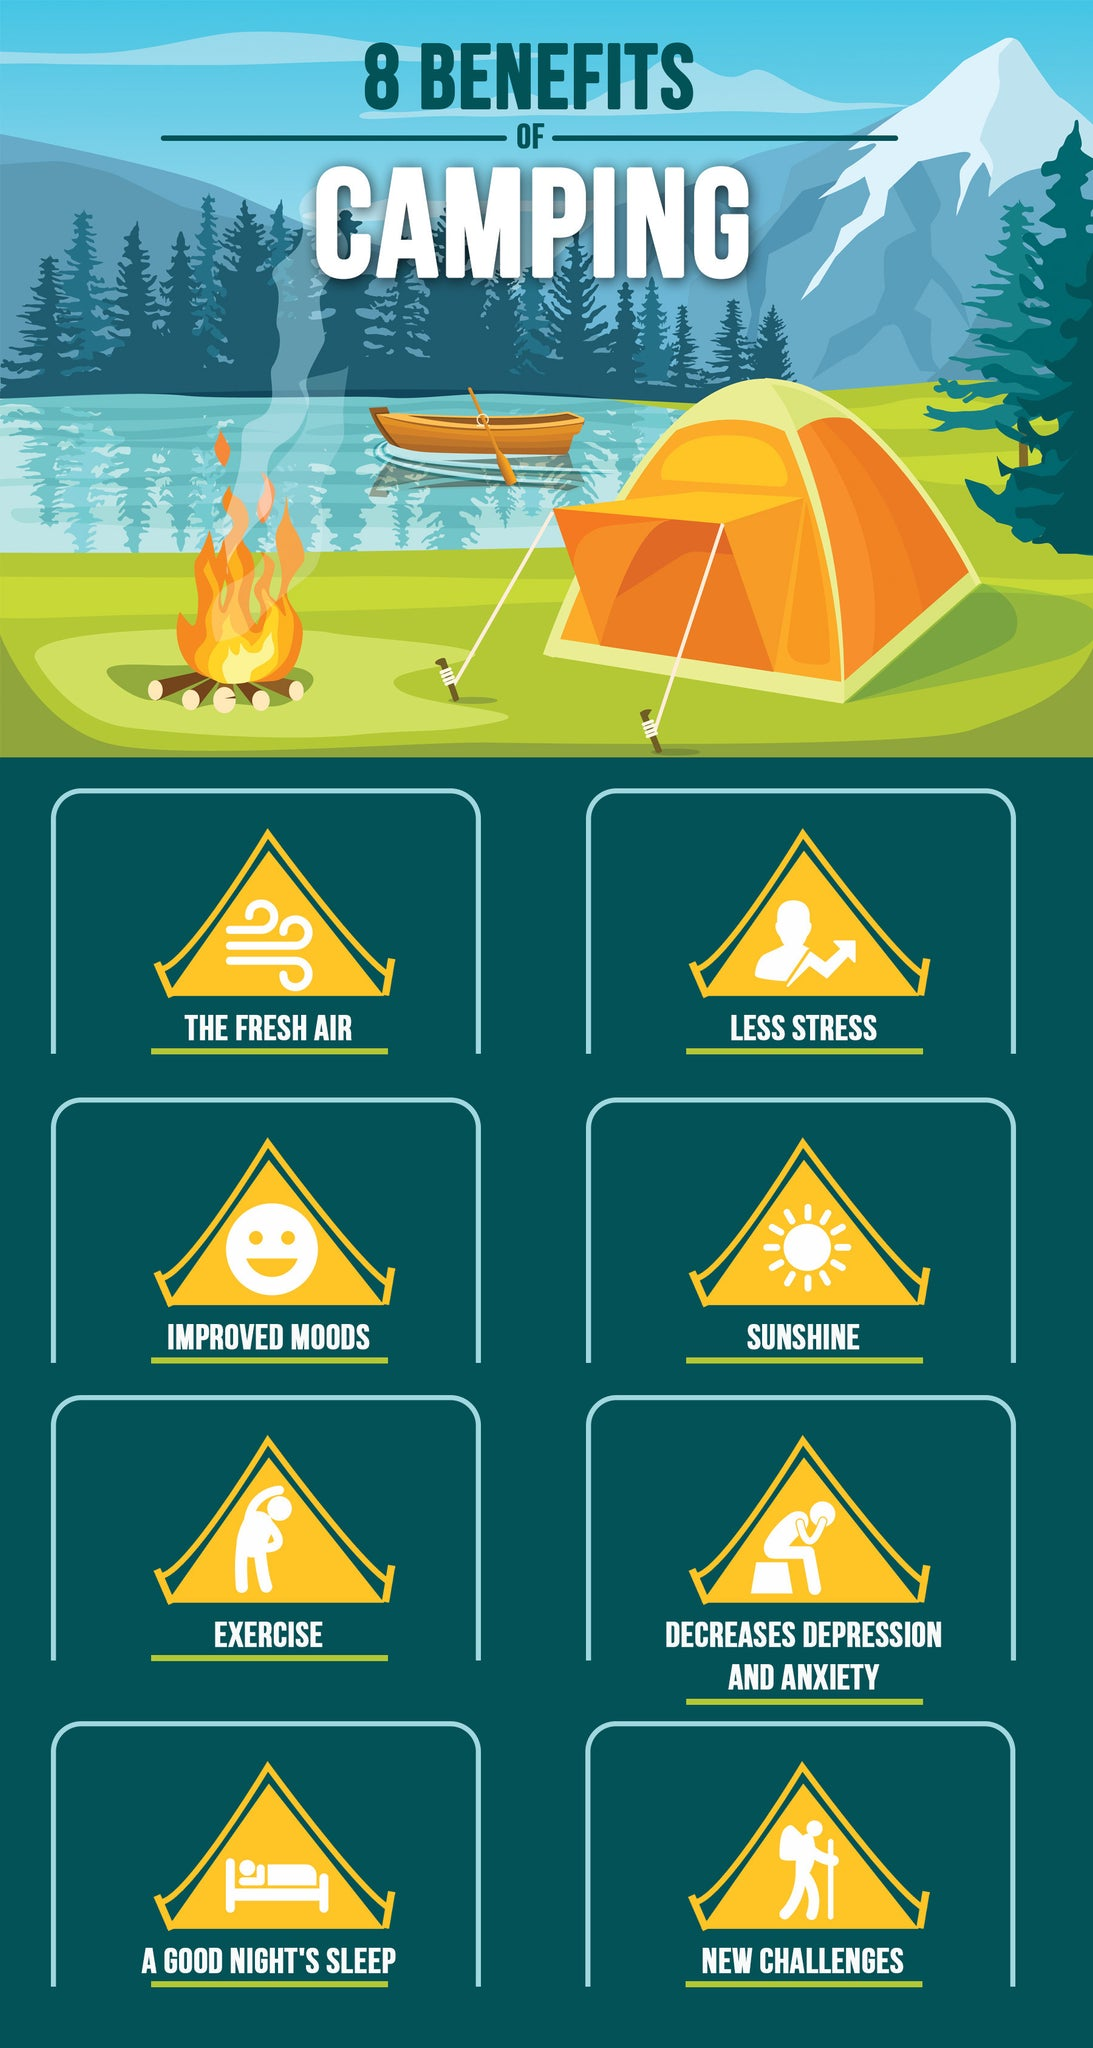 8 Benefits of Camping